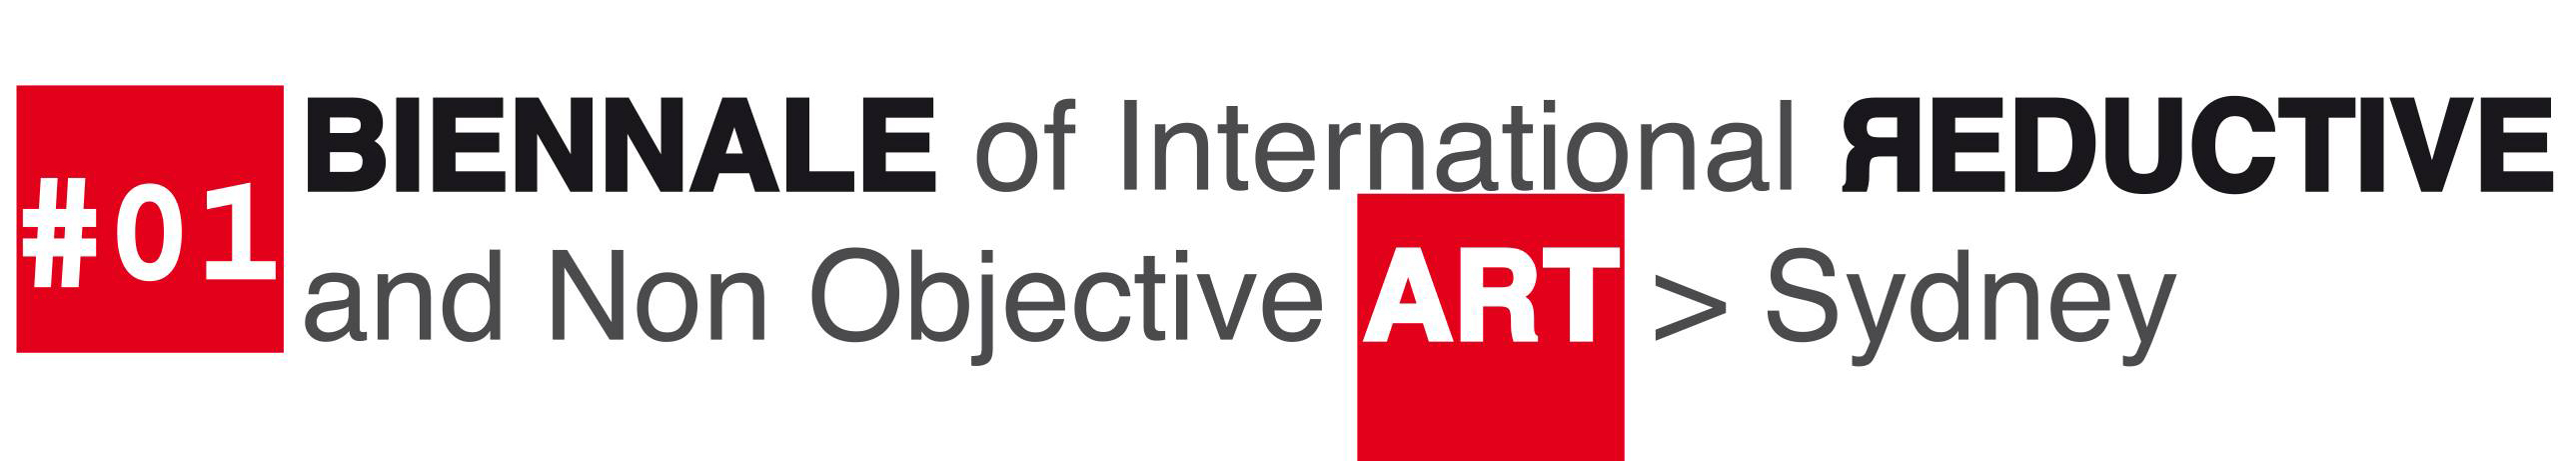 #1 Biennale of International Reductive and Non Objective Art invitation